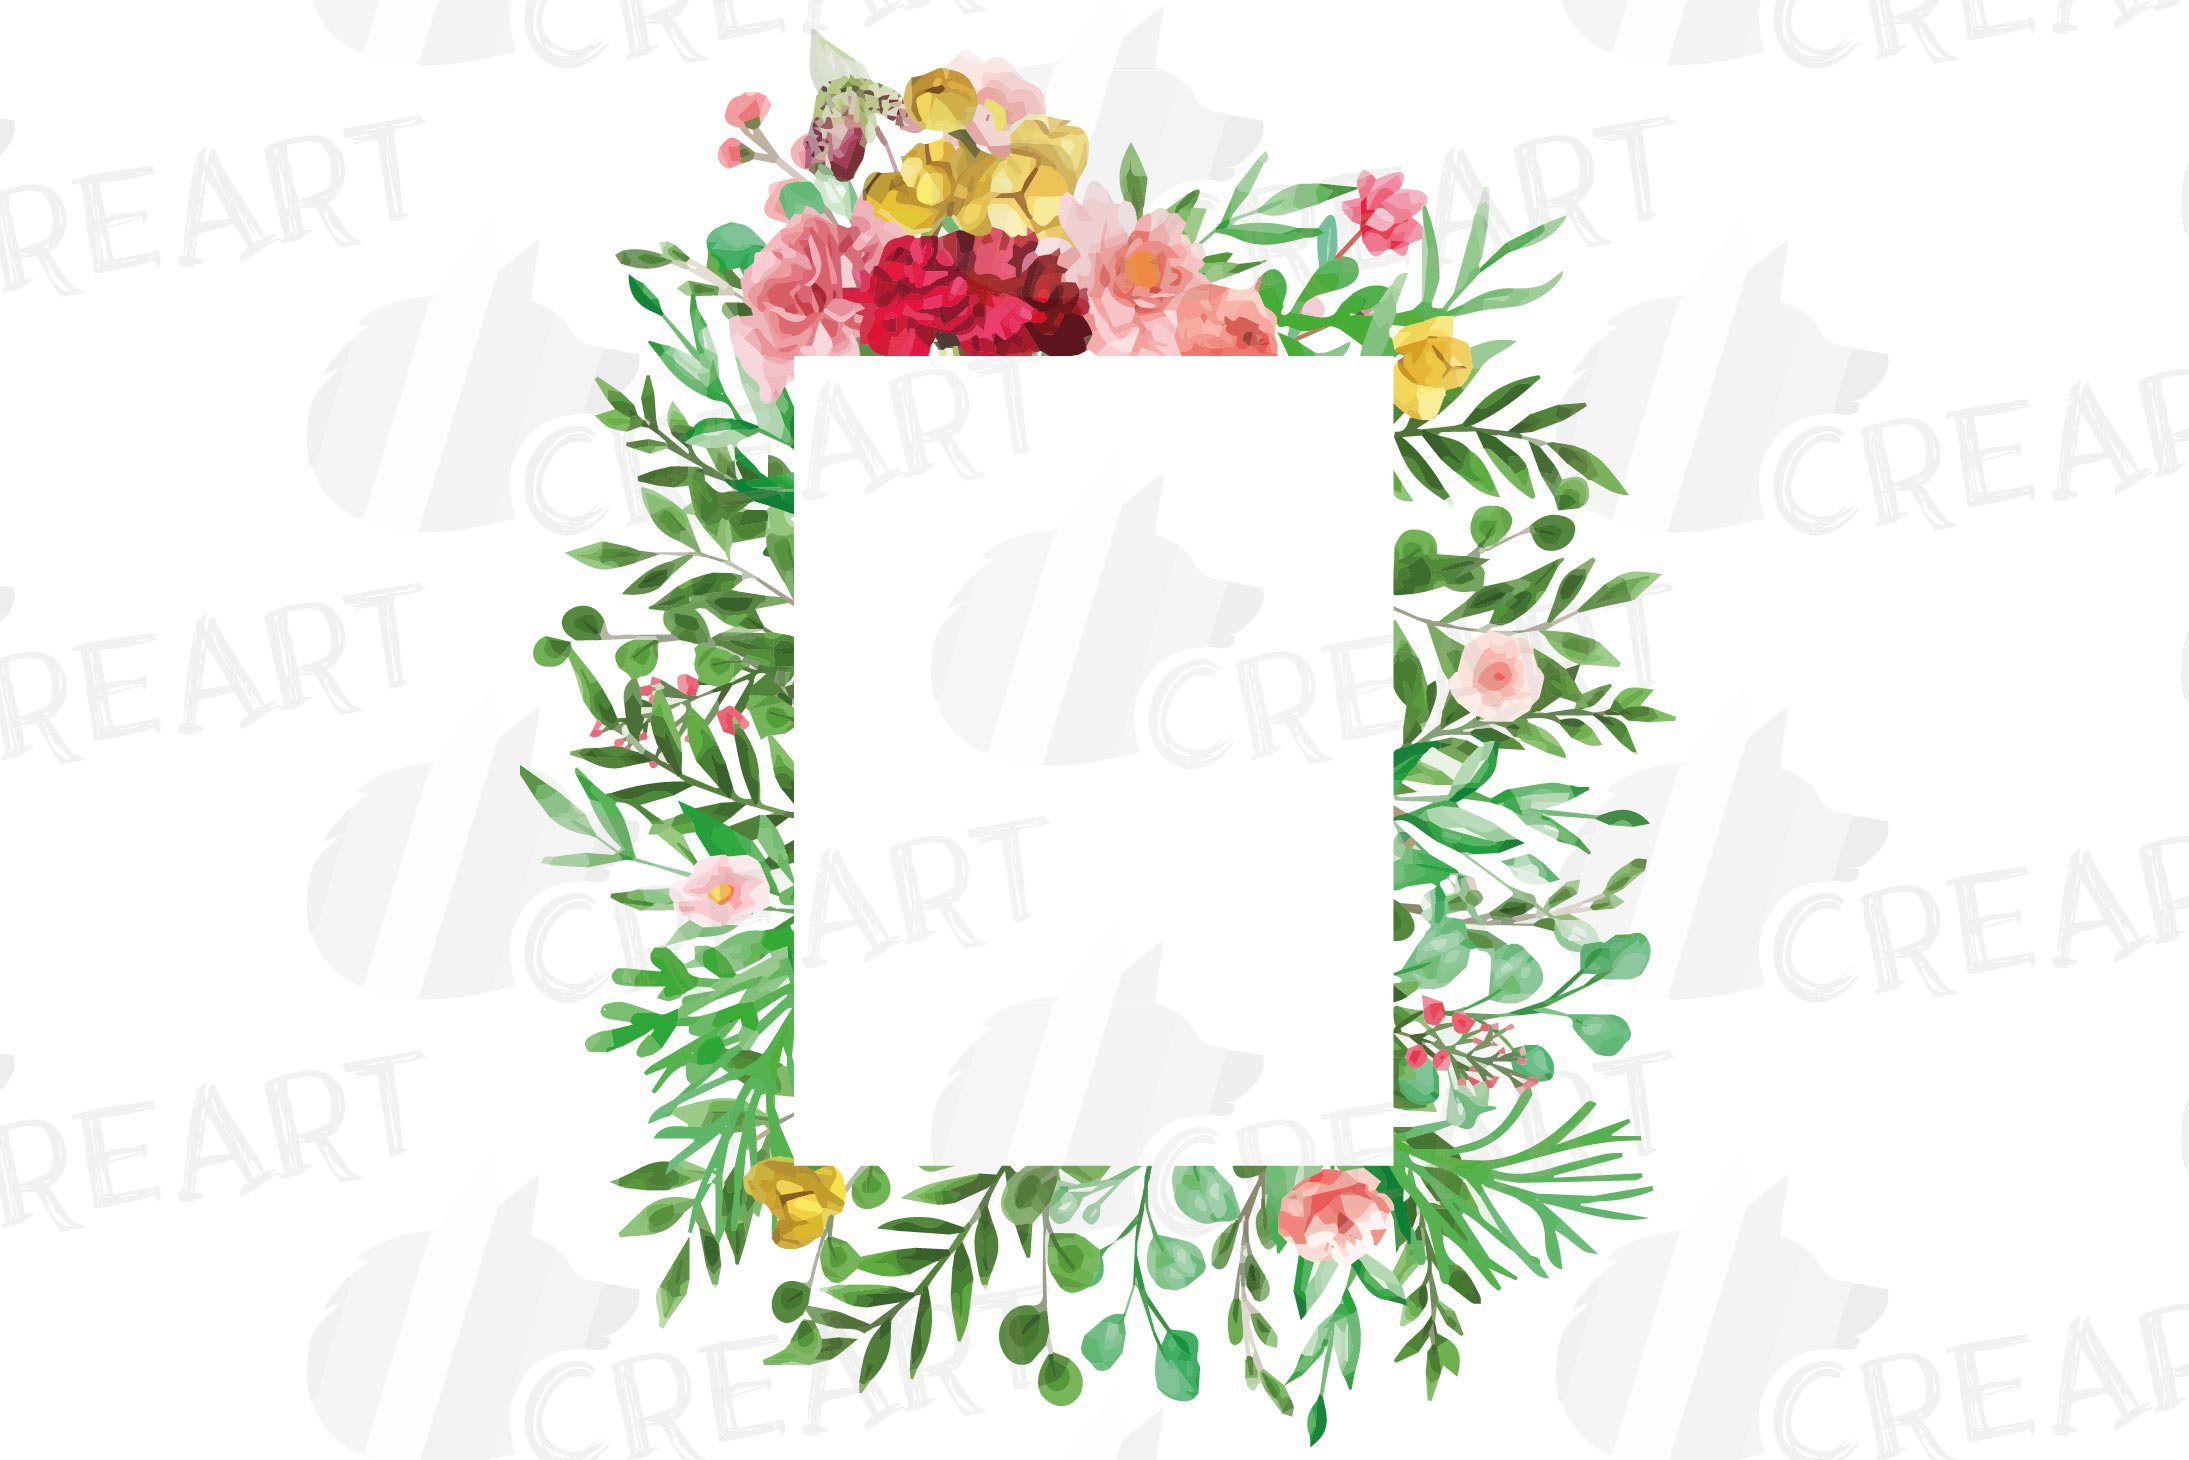 Watercolor floral floral frames and borders clip art pack example image 7